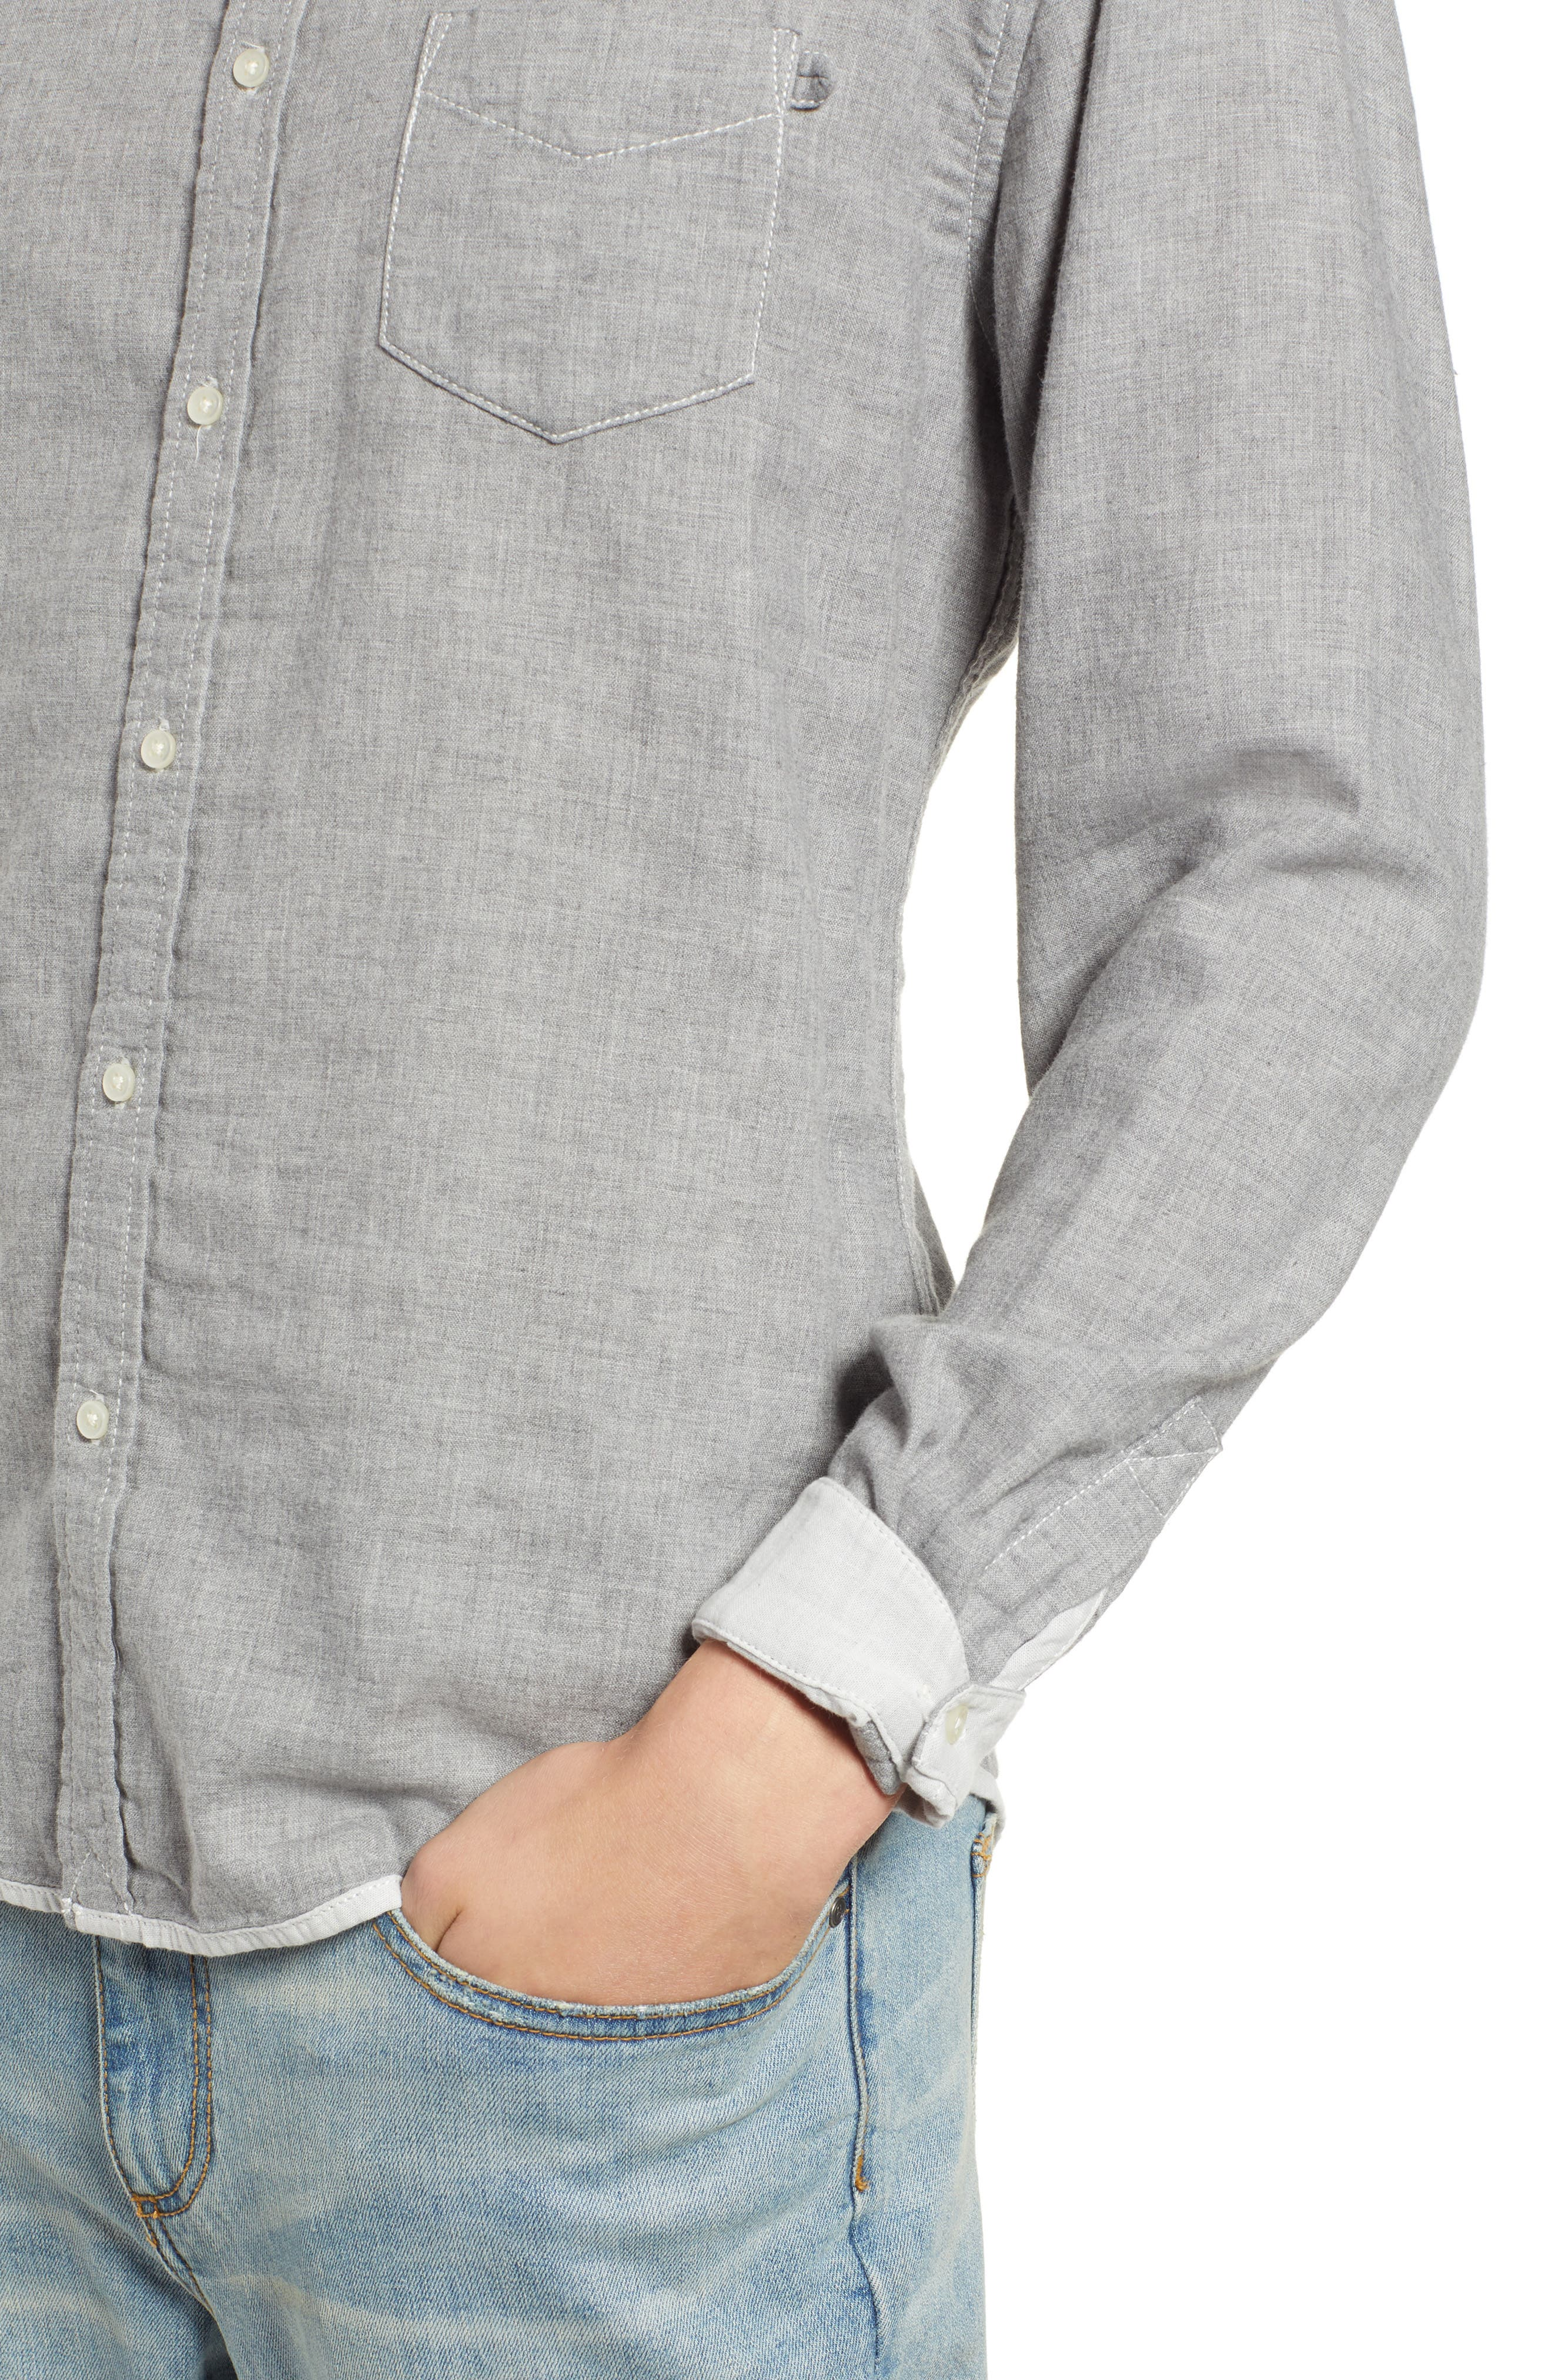 Ithaca Slim Fit Chambray Sport Shirt,                             Alternate thumbnail 2, color,                             HEATHER GREY